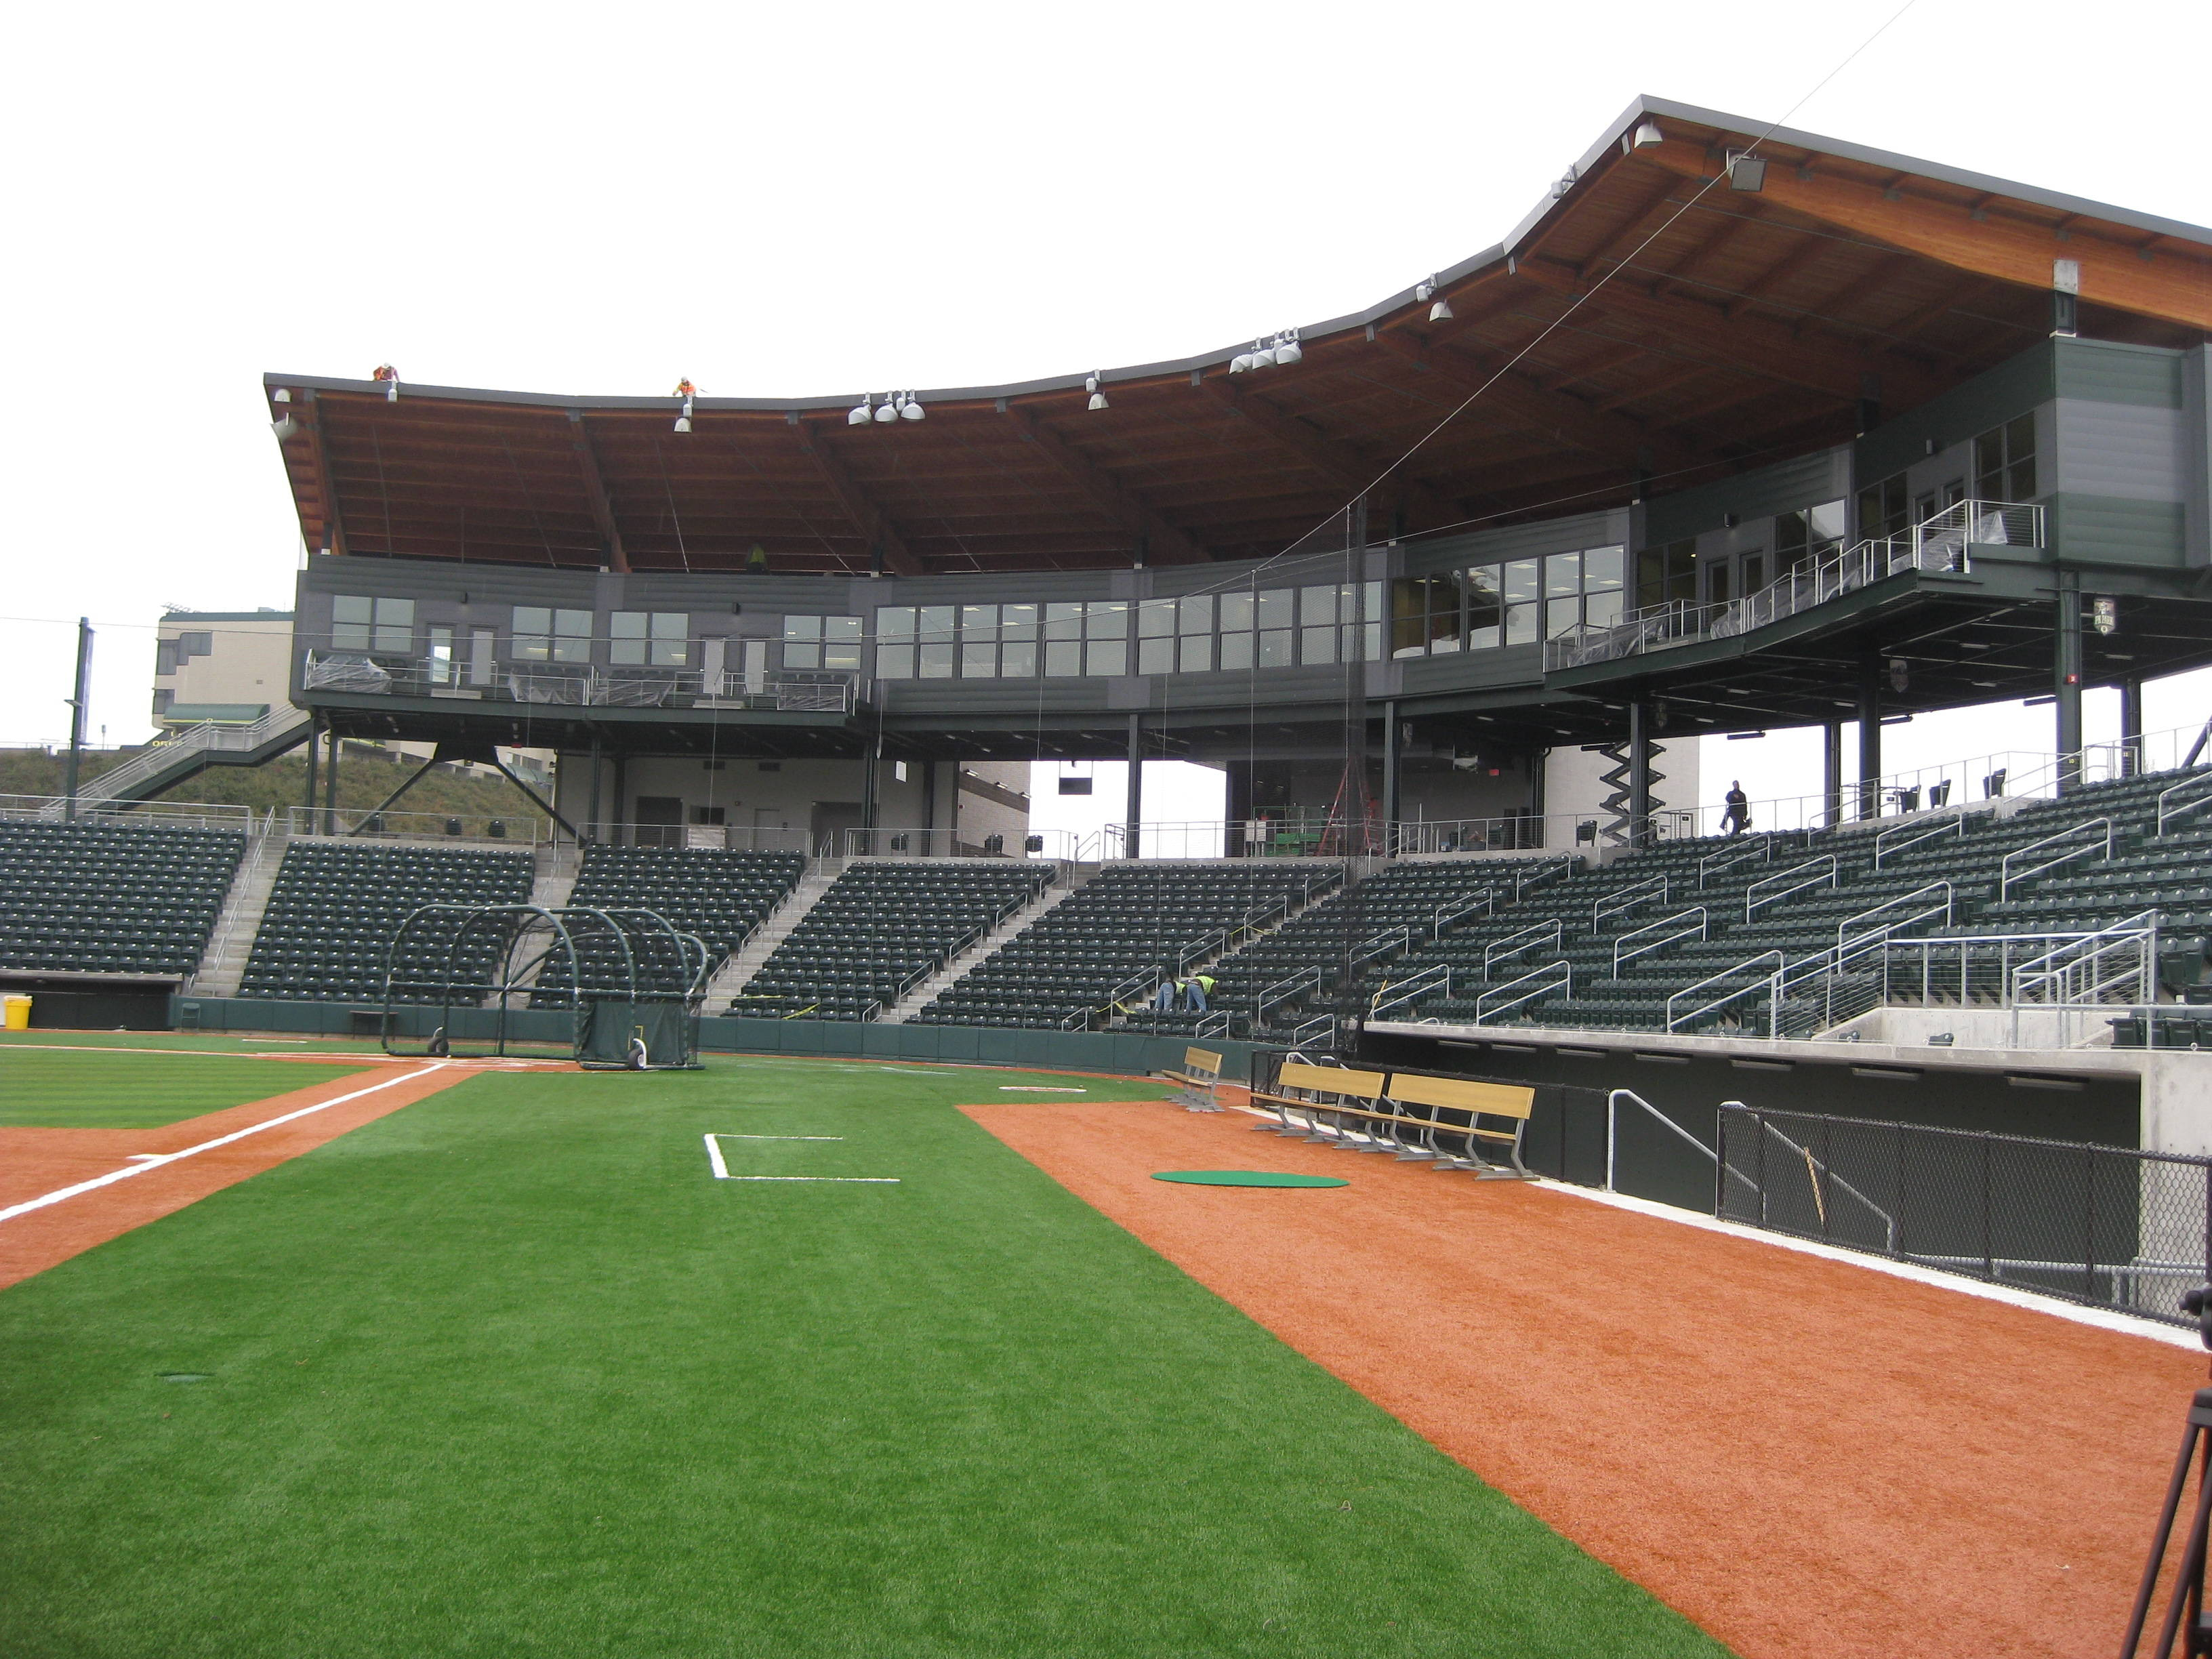 Pk park facility information university of oregon baseball stadium pk park facility information university of oregon baseball stadium malvernweather Image collections